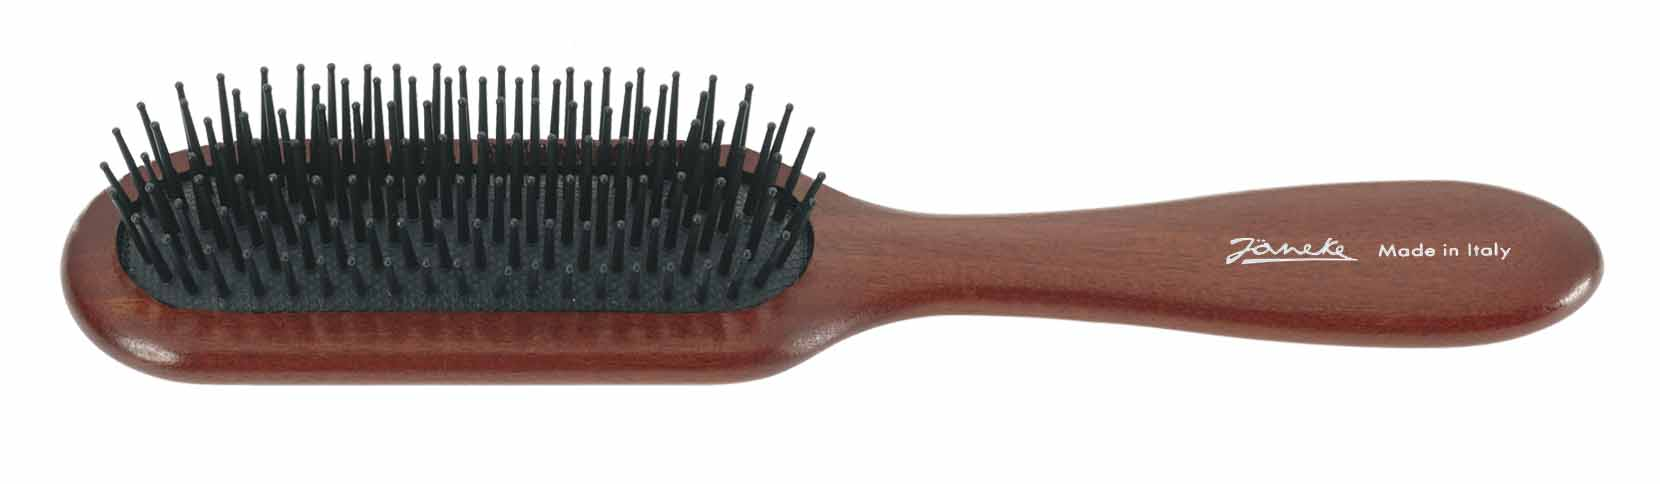 Professional pneumatic brush 22 cm Cod. SP19BK